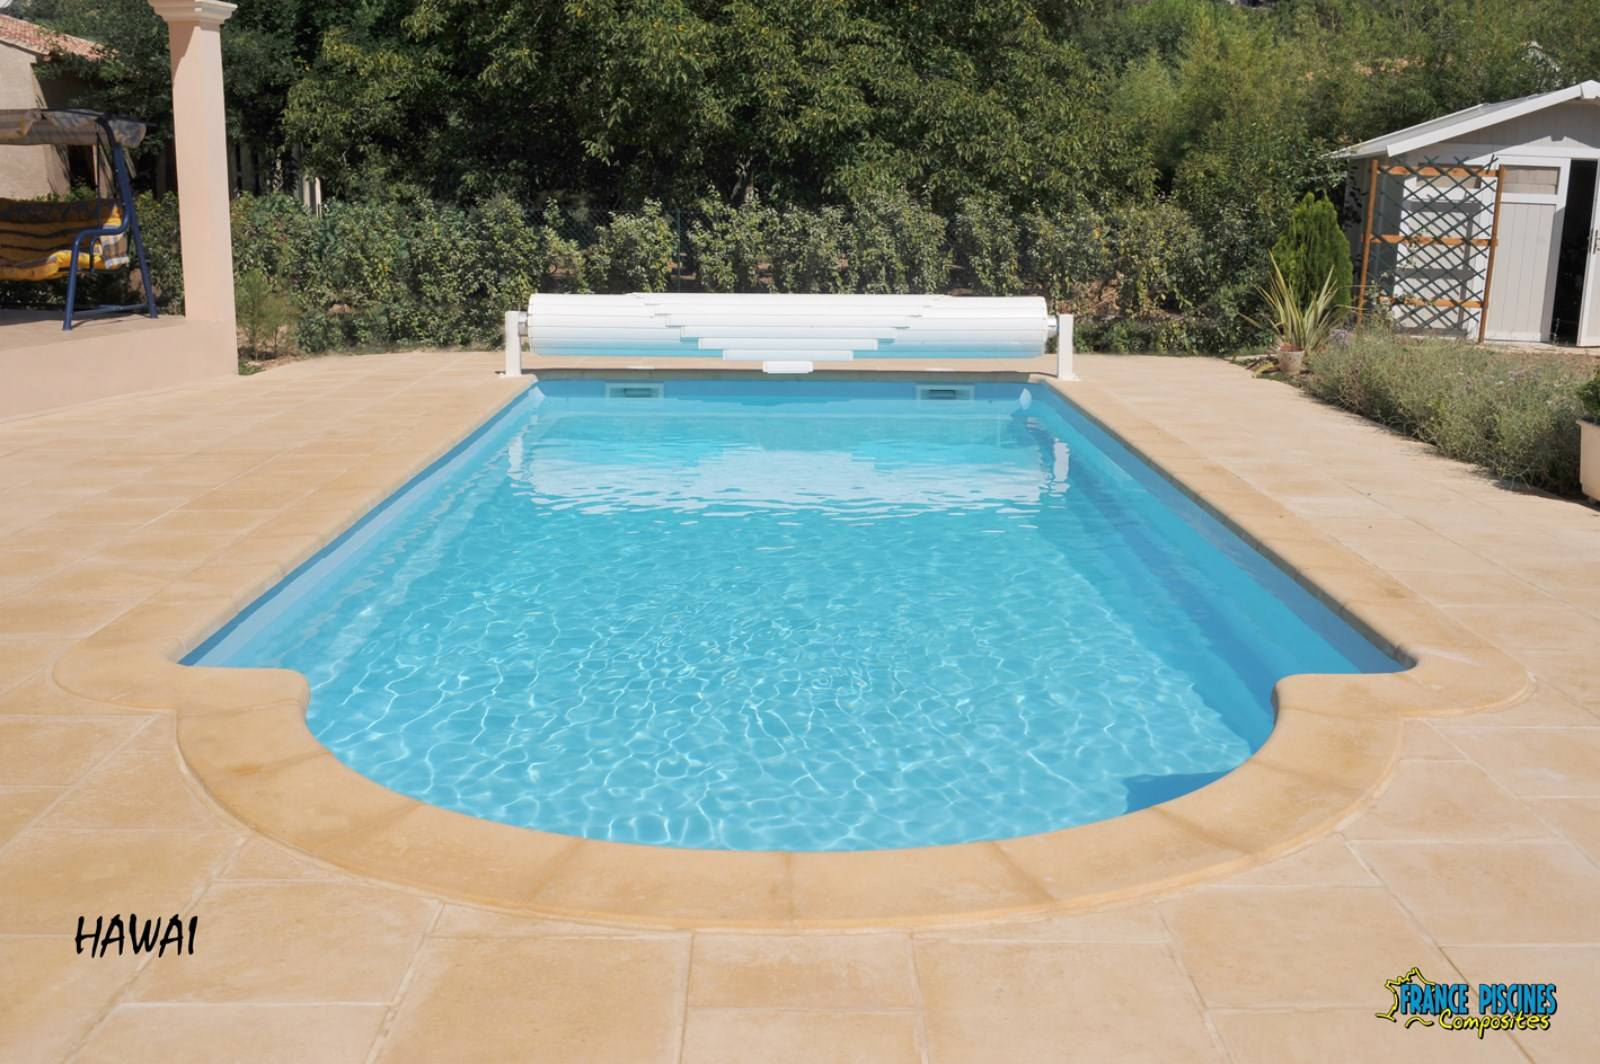 Vente et pose de piscine enterr e coque polyester for Piscine en france